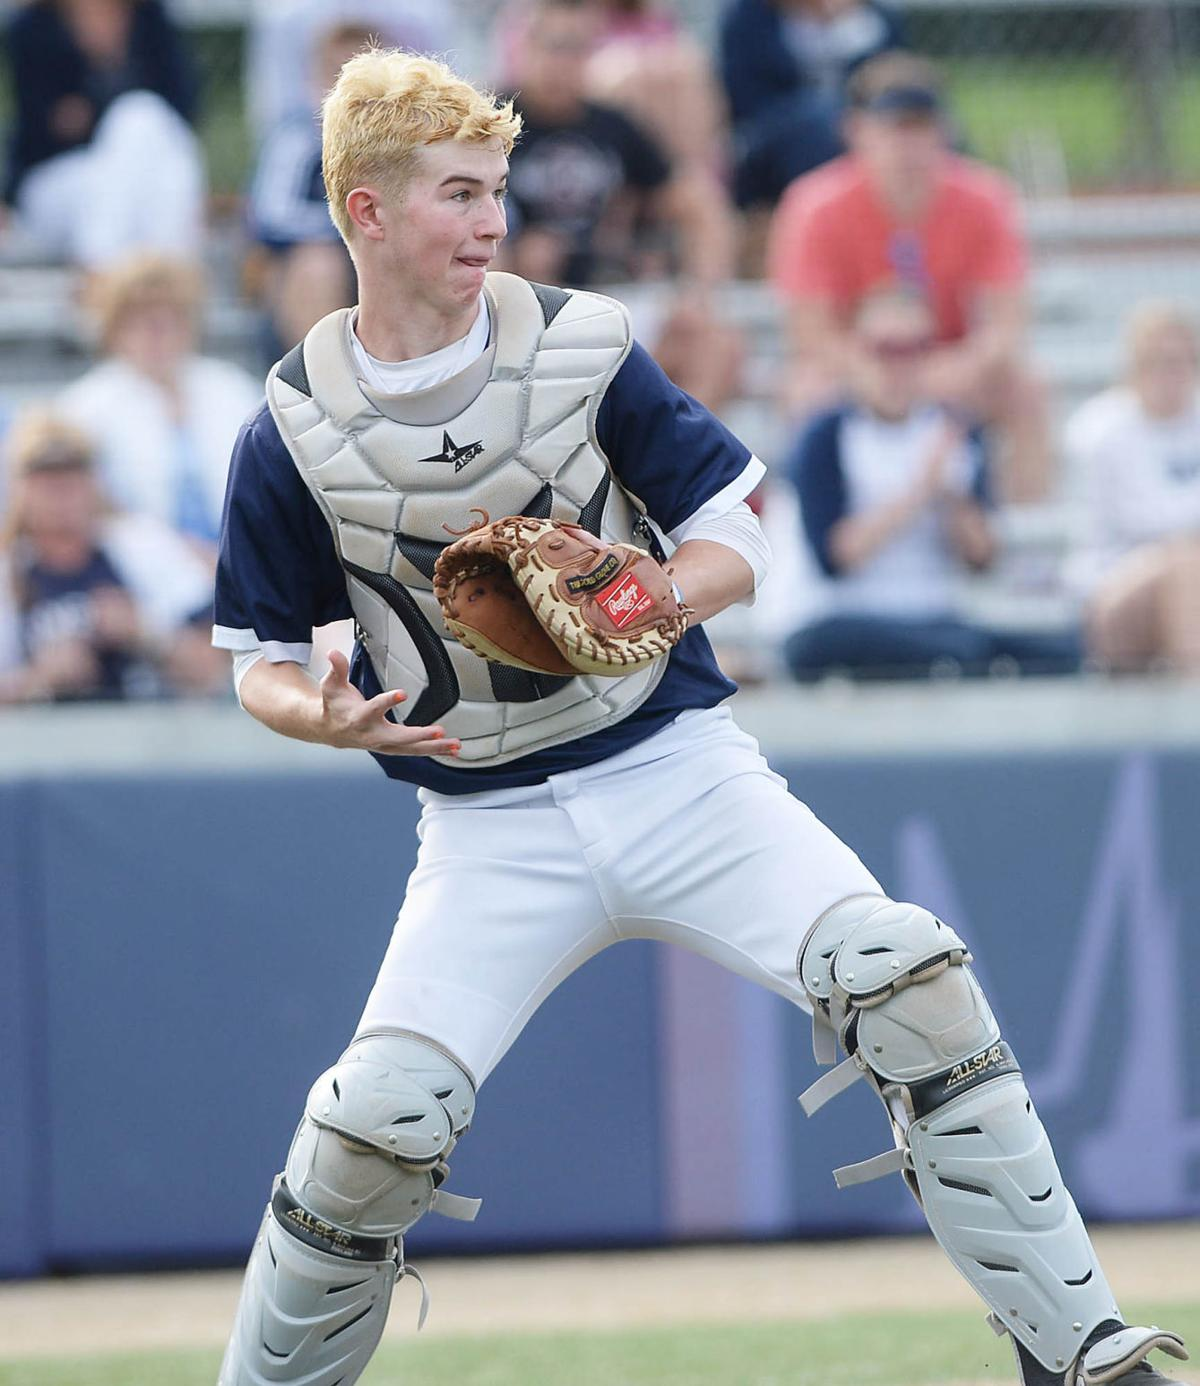 PIAA Baseball: Camp Hill vs Schuylkill Haven